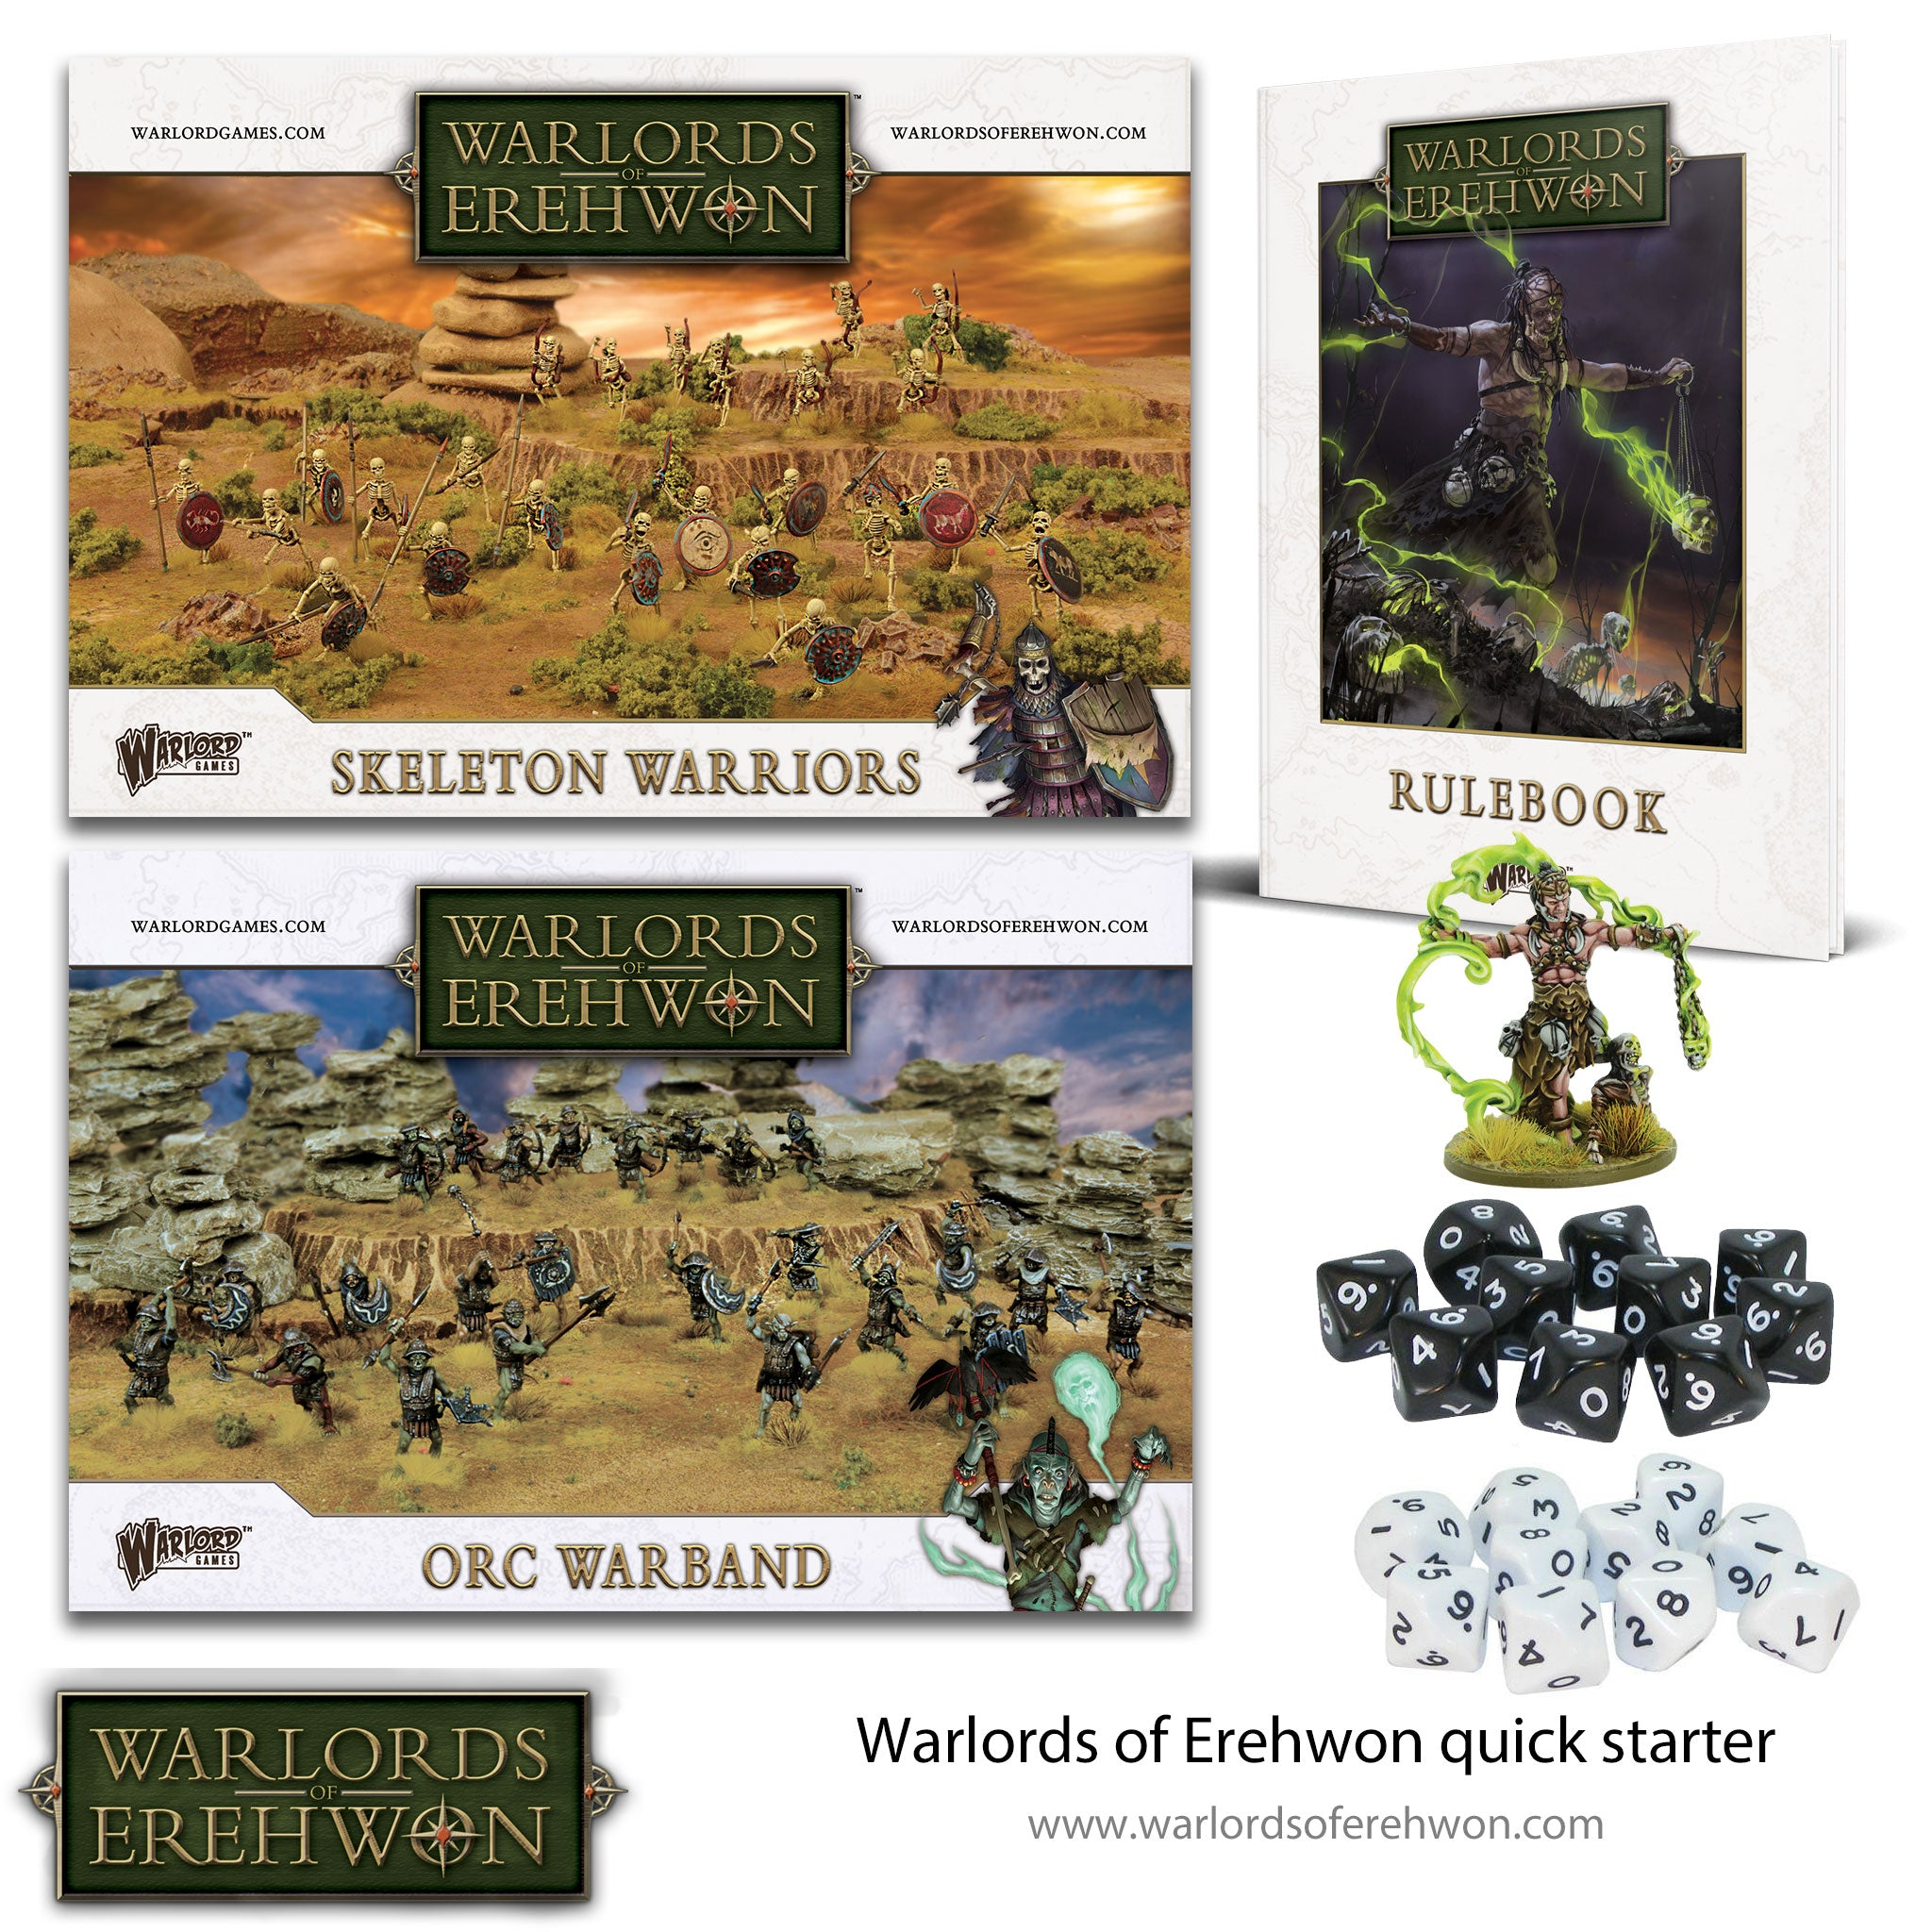 Gamme alternative - Page 9 699910003-Warlords-of-Erehwon-quick-starter